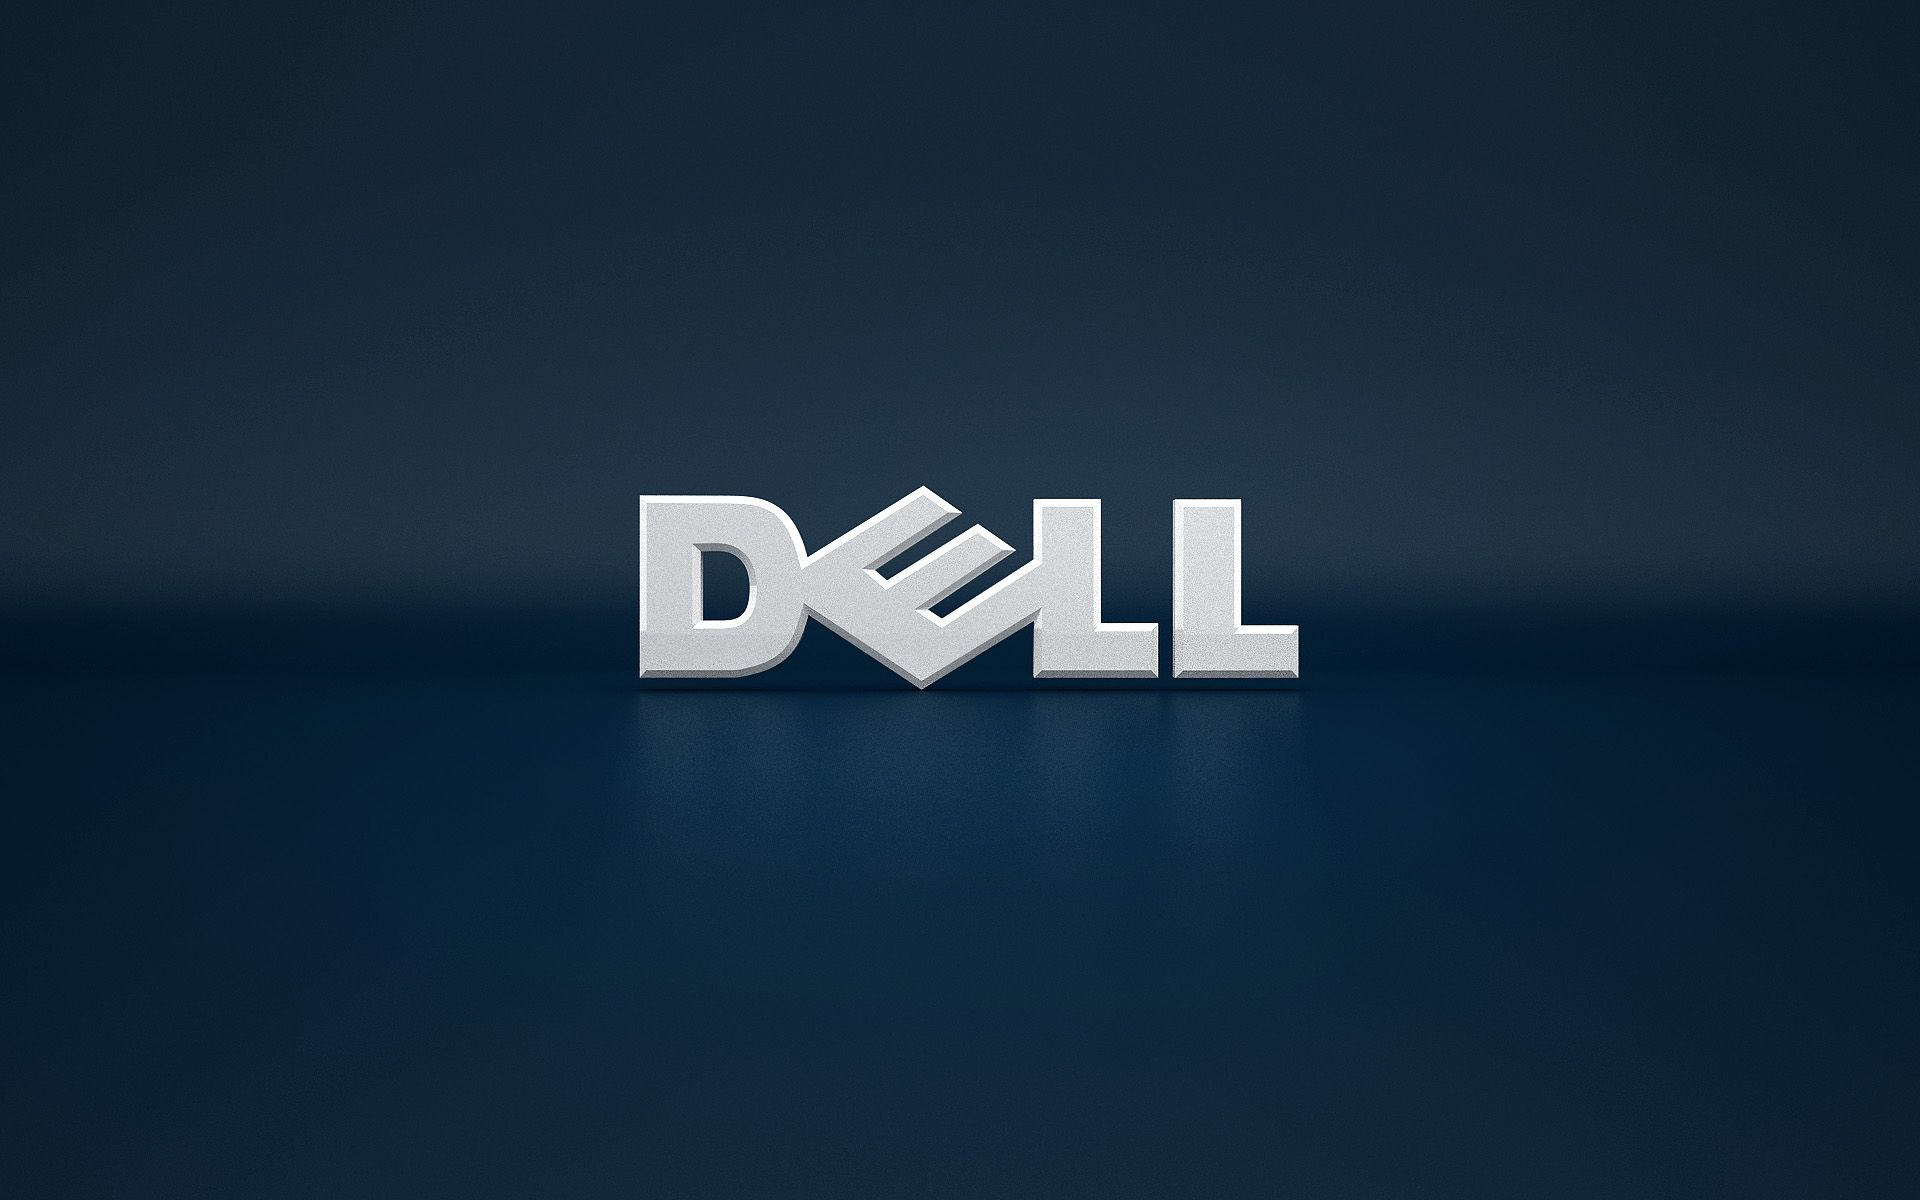 Dell 4k Wallpapers Top Free Dell 4k Backgrounds